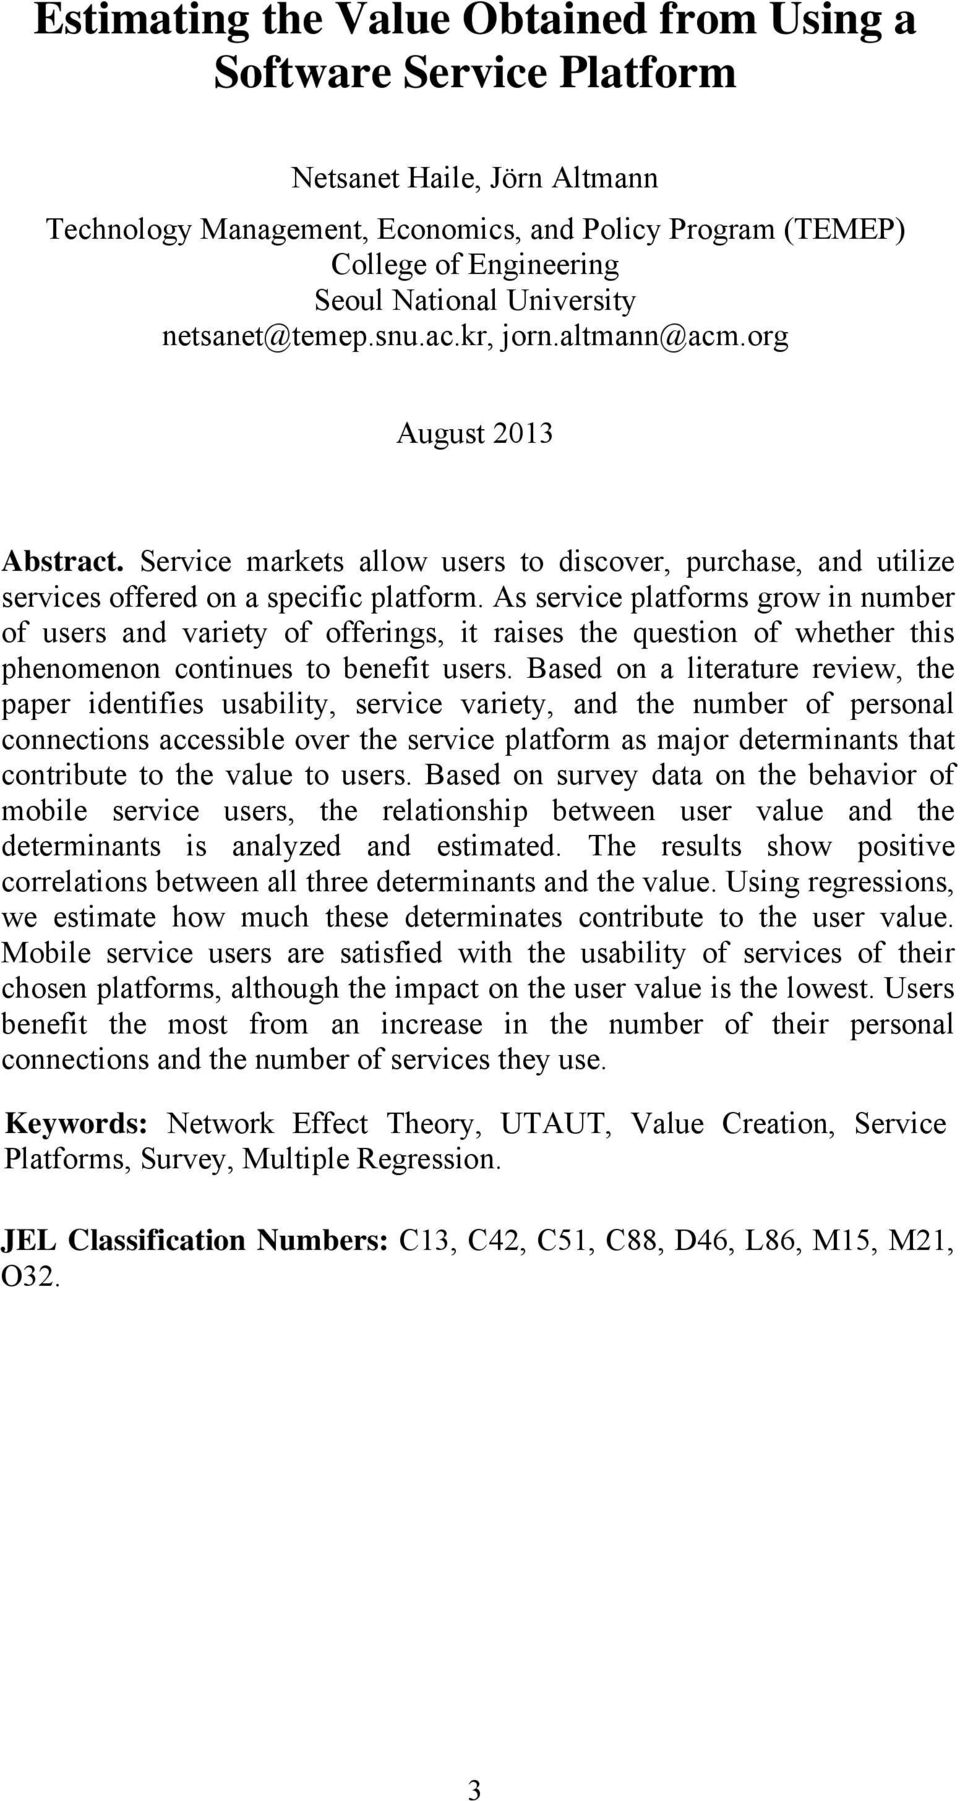 As service platforms grow in number of users and variety of offerings, it raises the question of whether this phenomenon continues to benefit users.